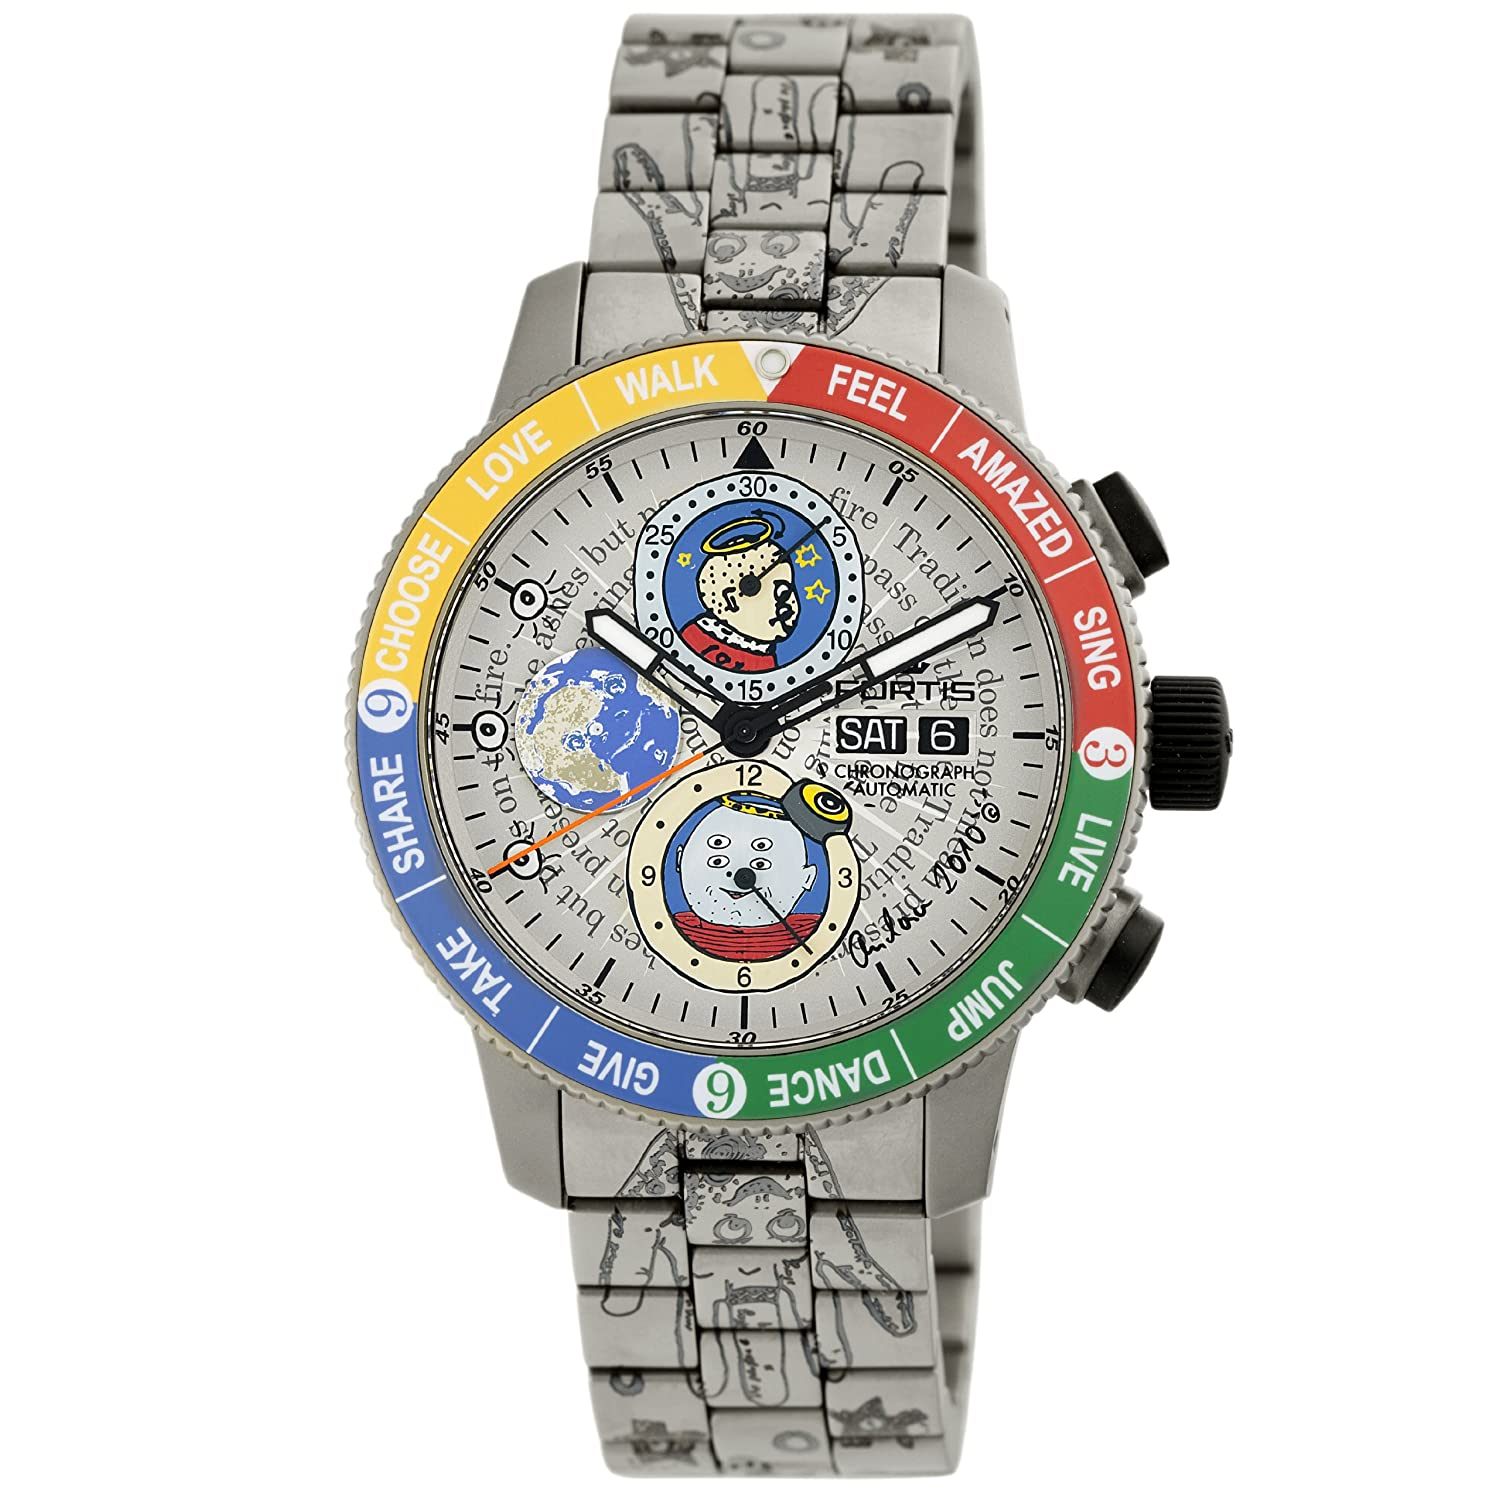 This is the most beautiful watch that I have ever seen!  91kfTGpfOWL._AA1500_